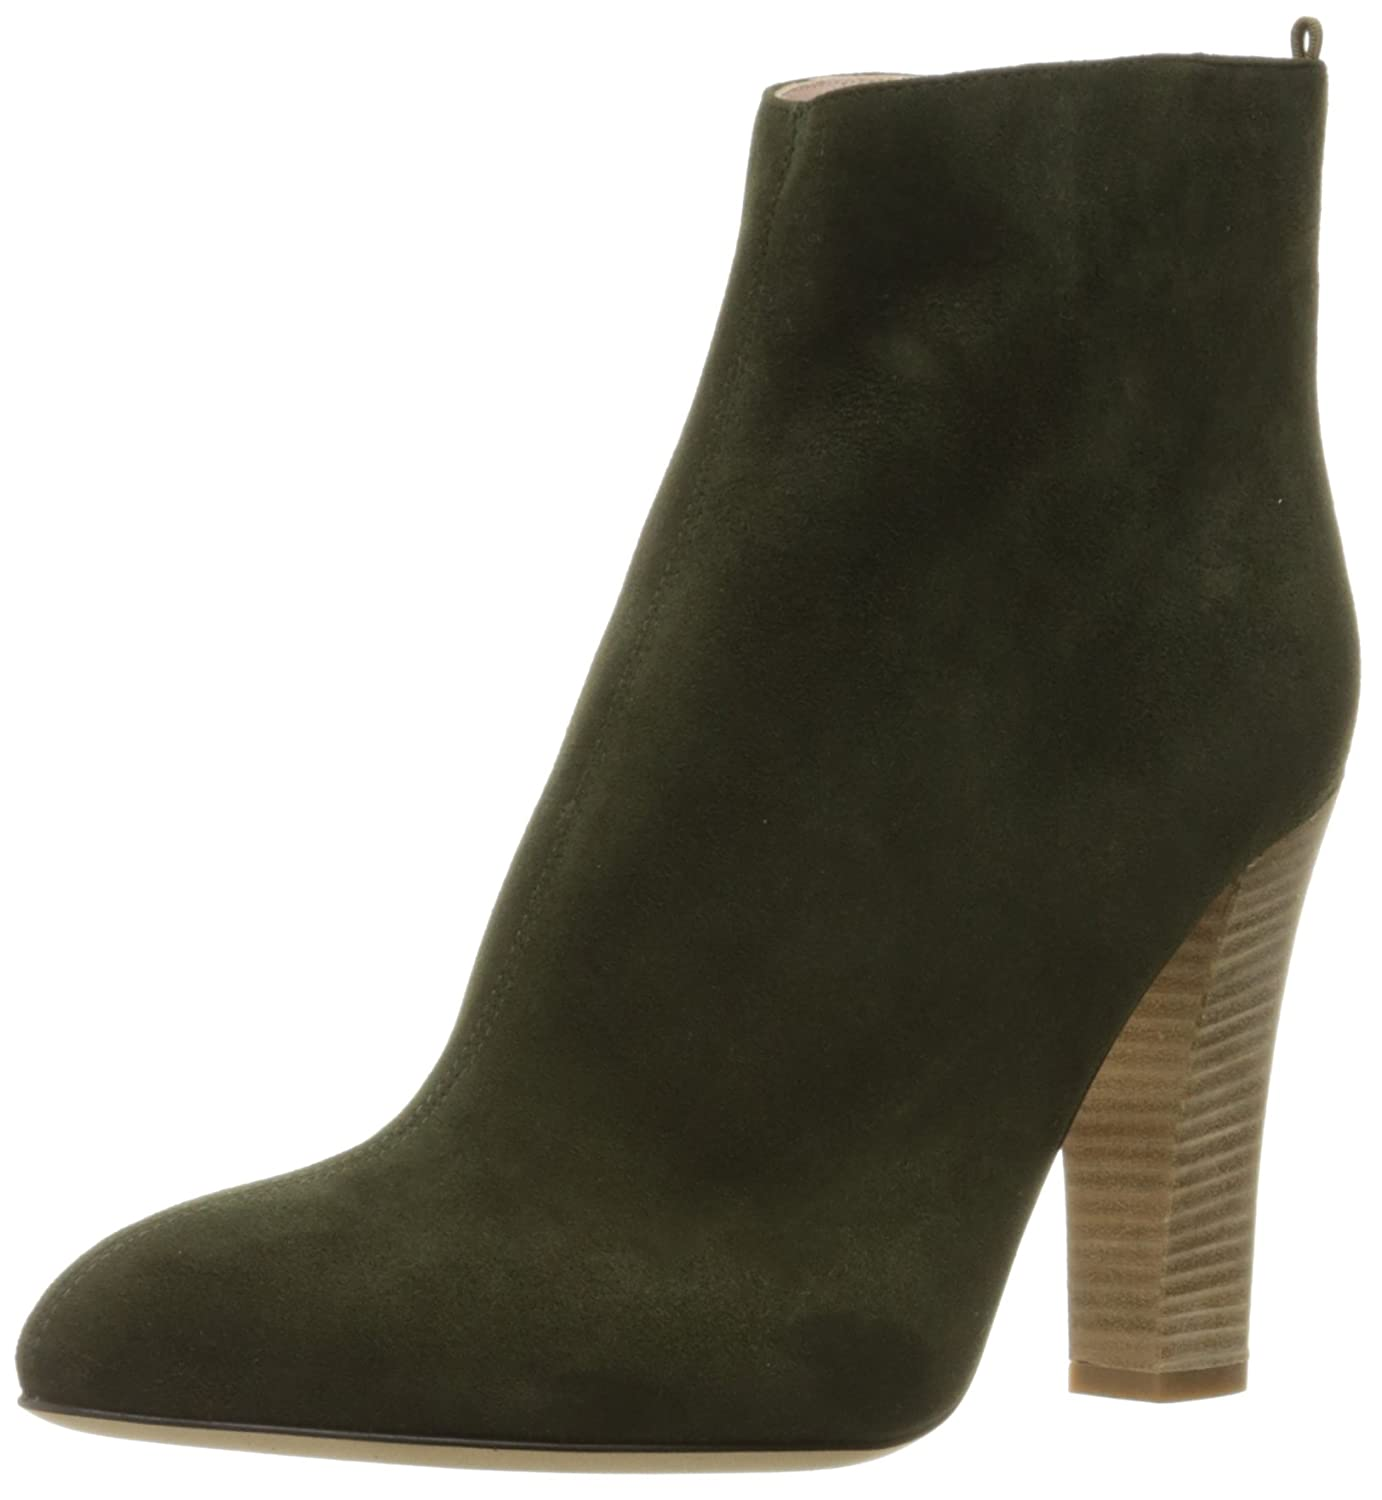 Olive Suede SJP by Sarah Jessica Parker Women's Minnie Ankle Bootie